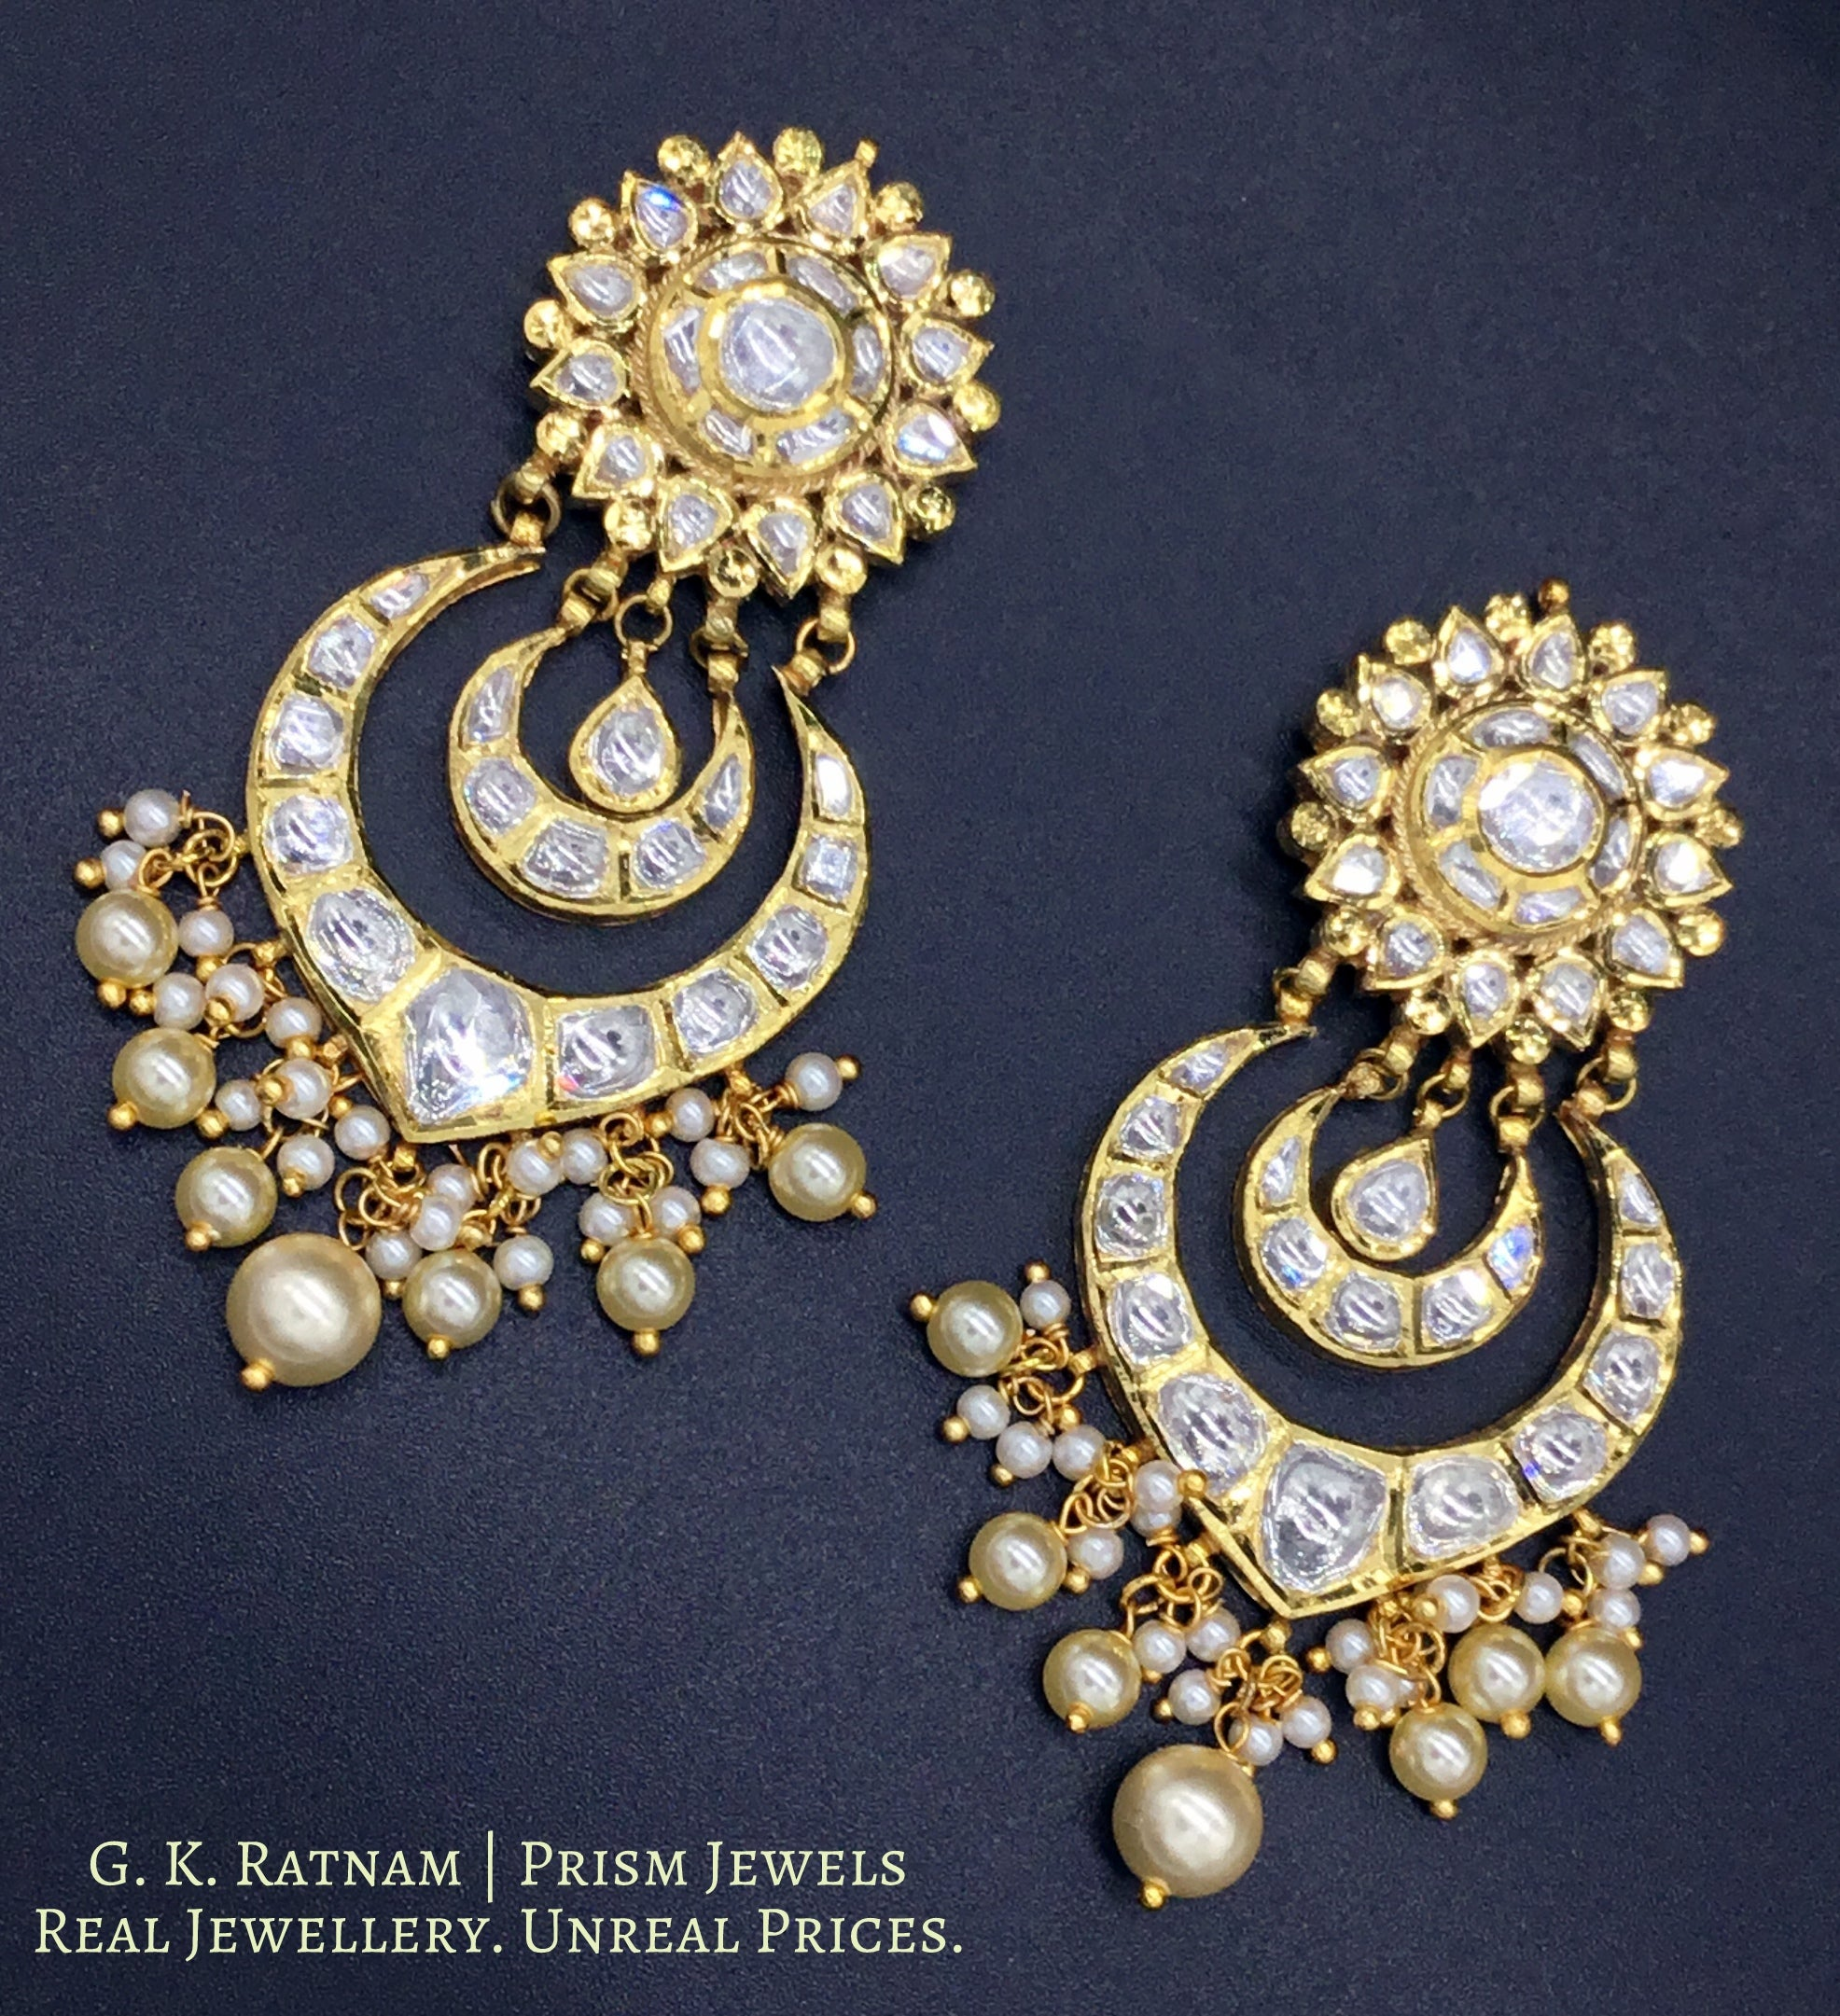 18k Gold and Diamond Polki Chand Bali Earring pair with multiple V-shaped chands - G. K. Ratnam